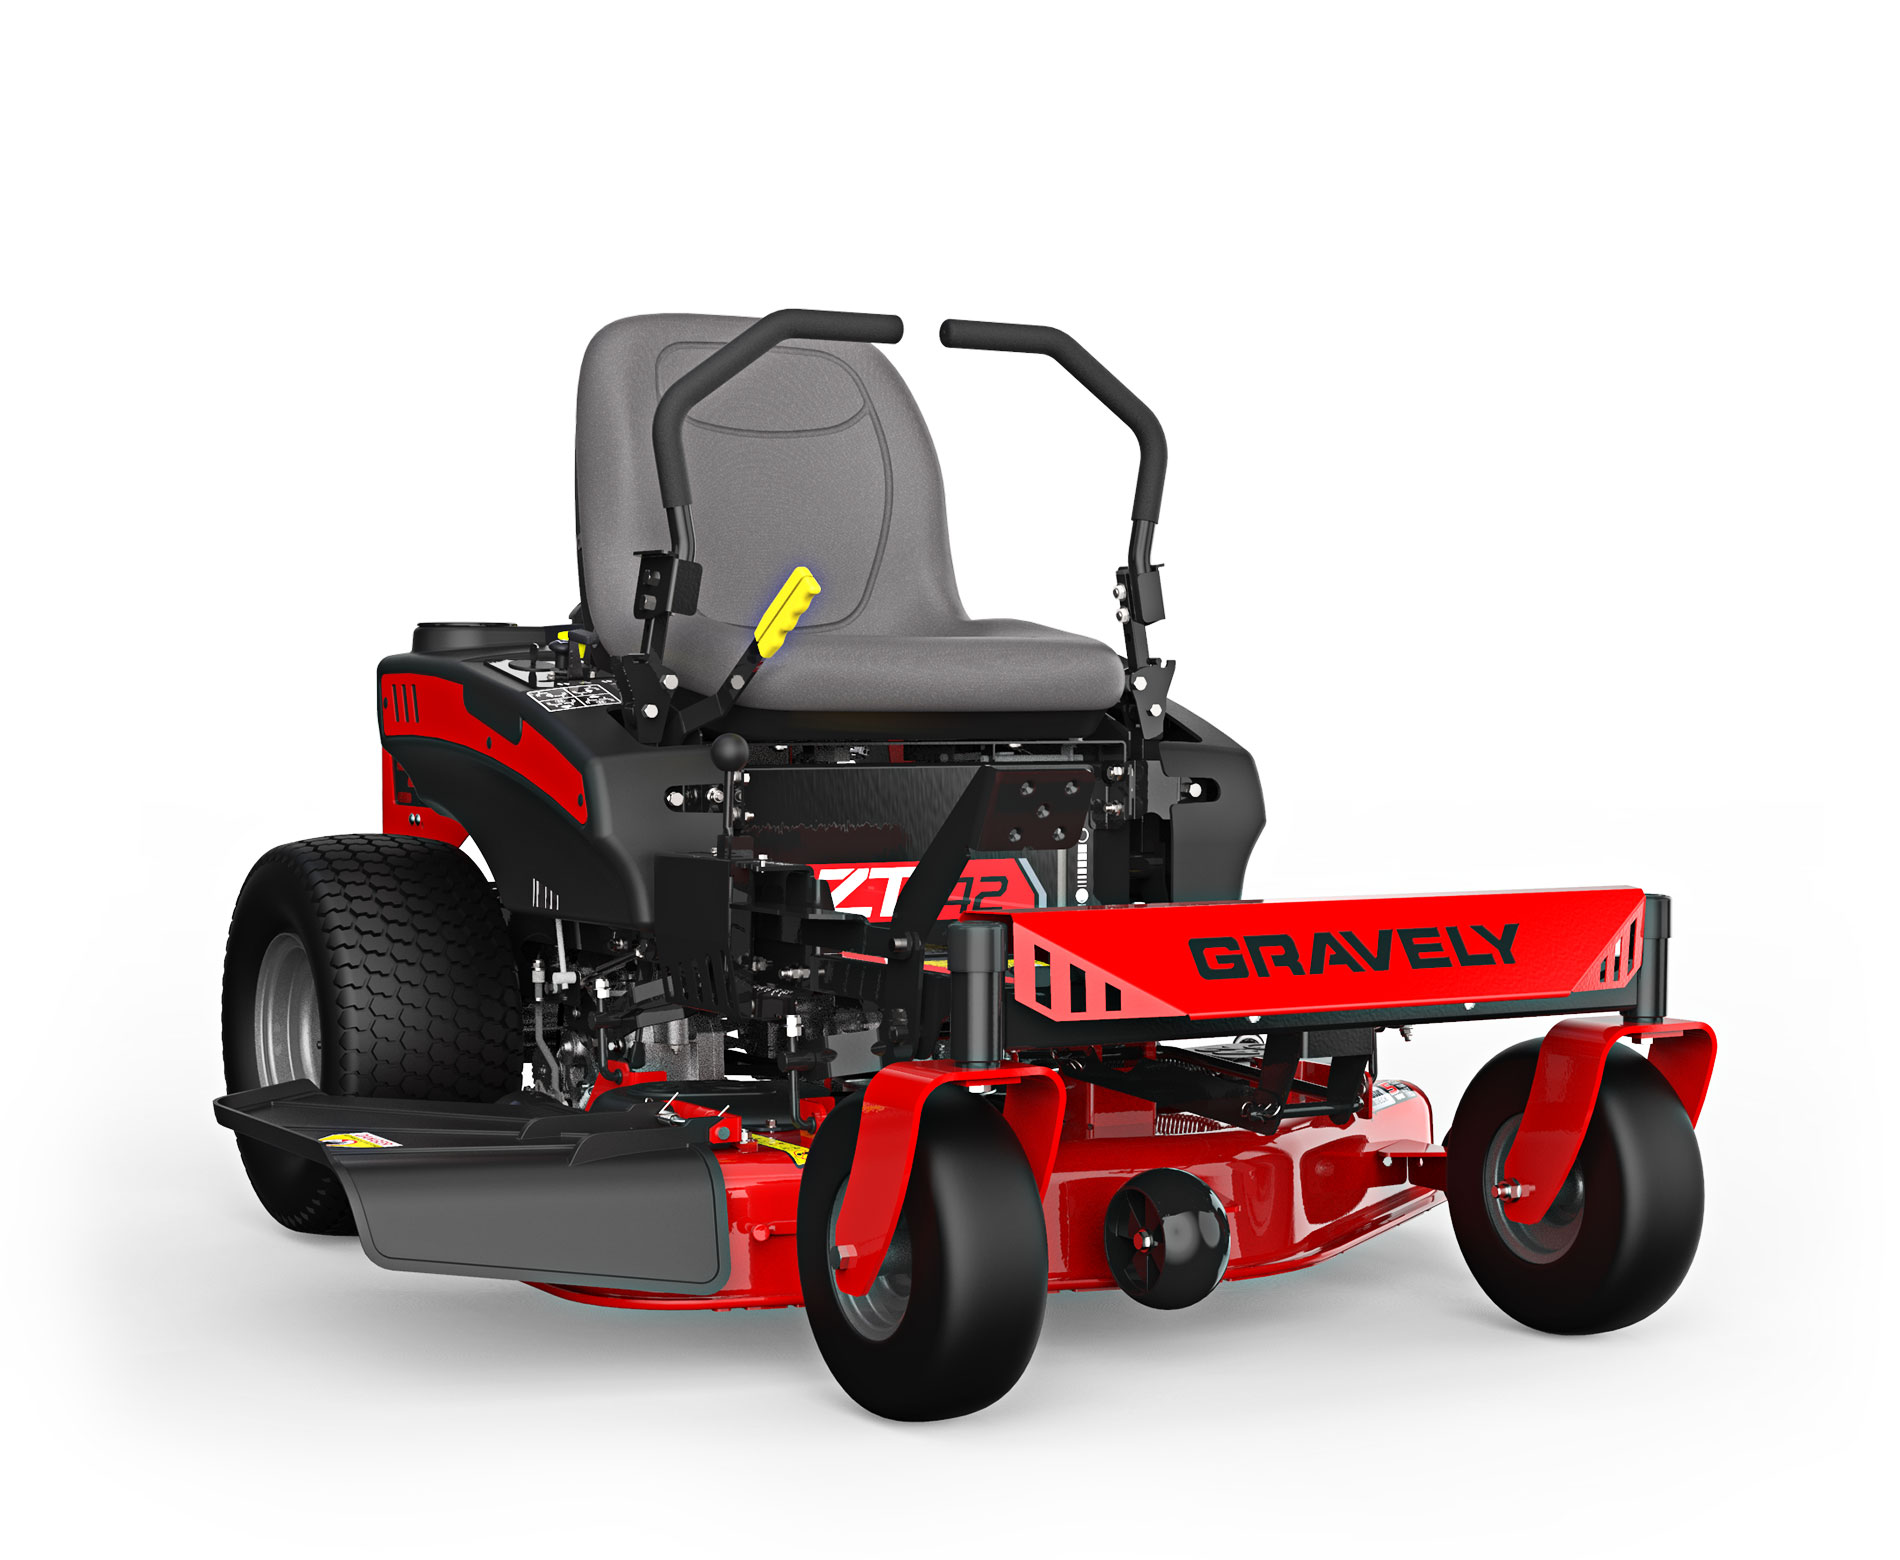 How a Gravely Mower can Help Save Time